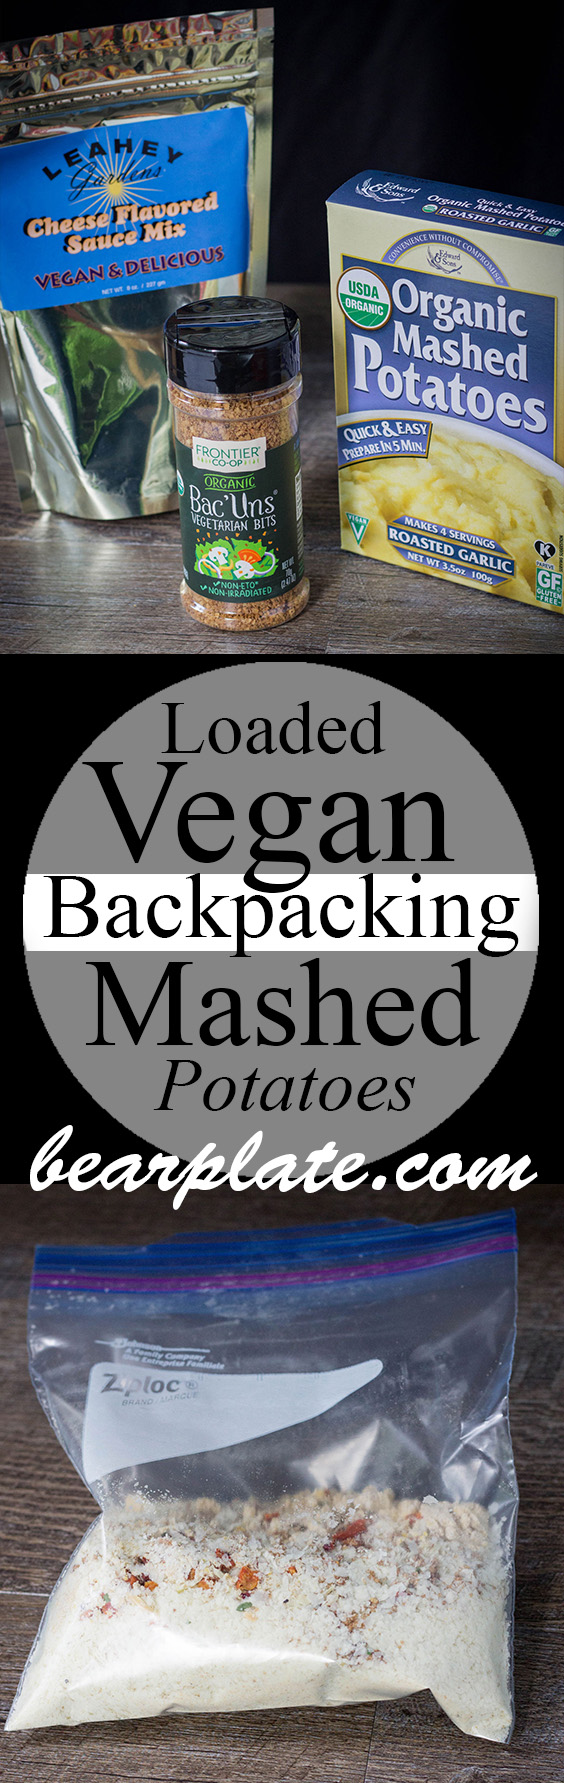 Loaded Vegan Backpacking Mashed Potatoes! #vegan #backpacking #plantbased #yummy #trailfuel #recipe